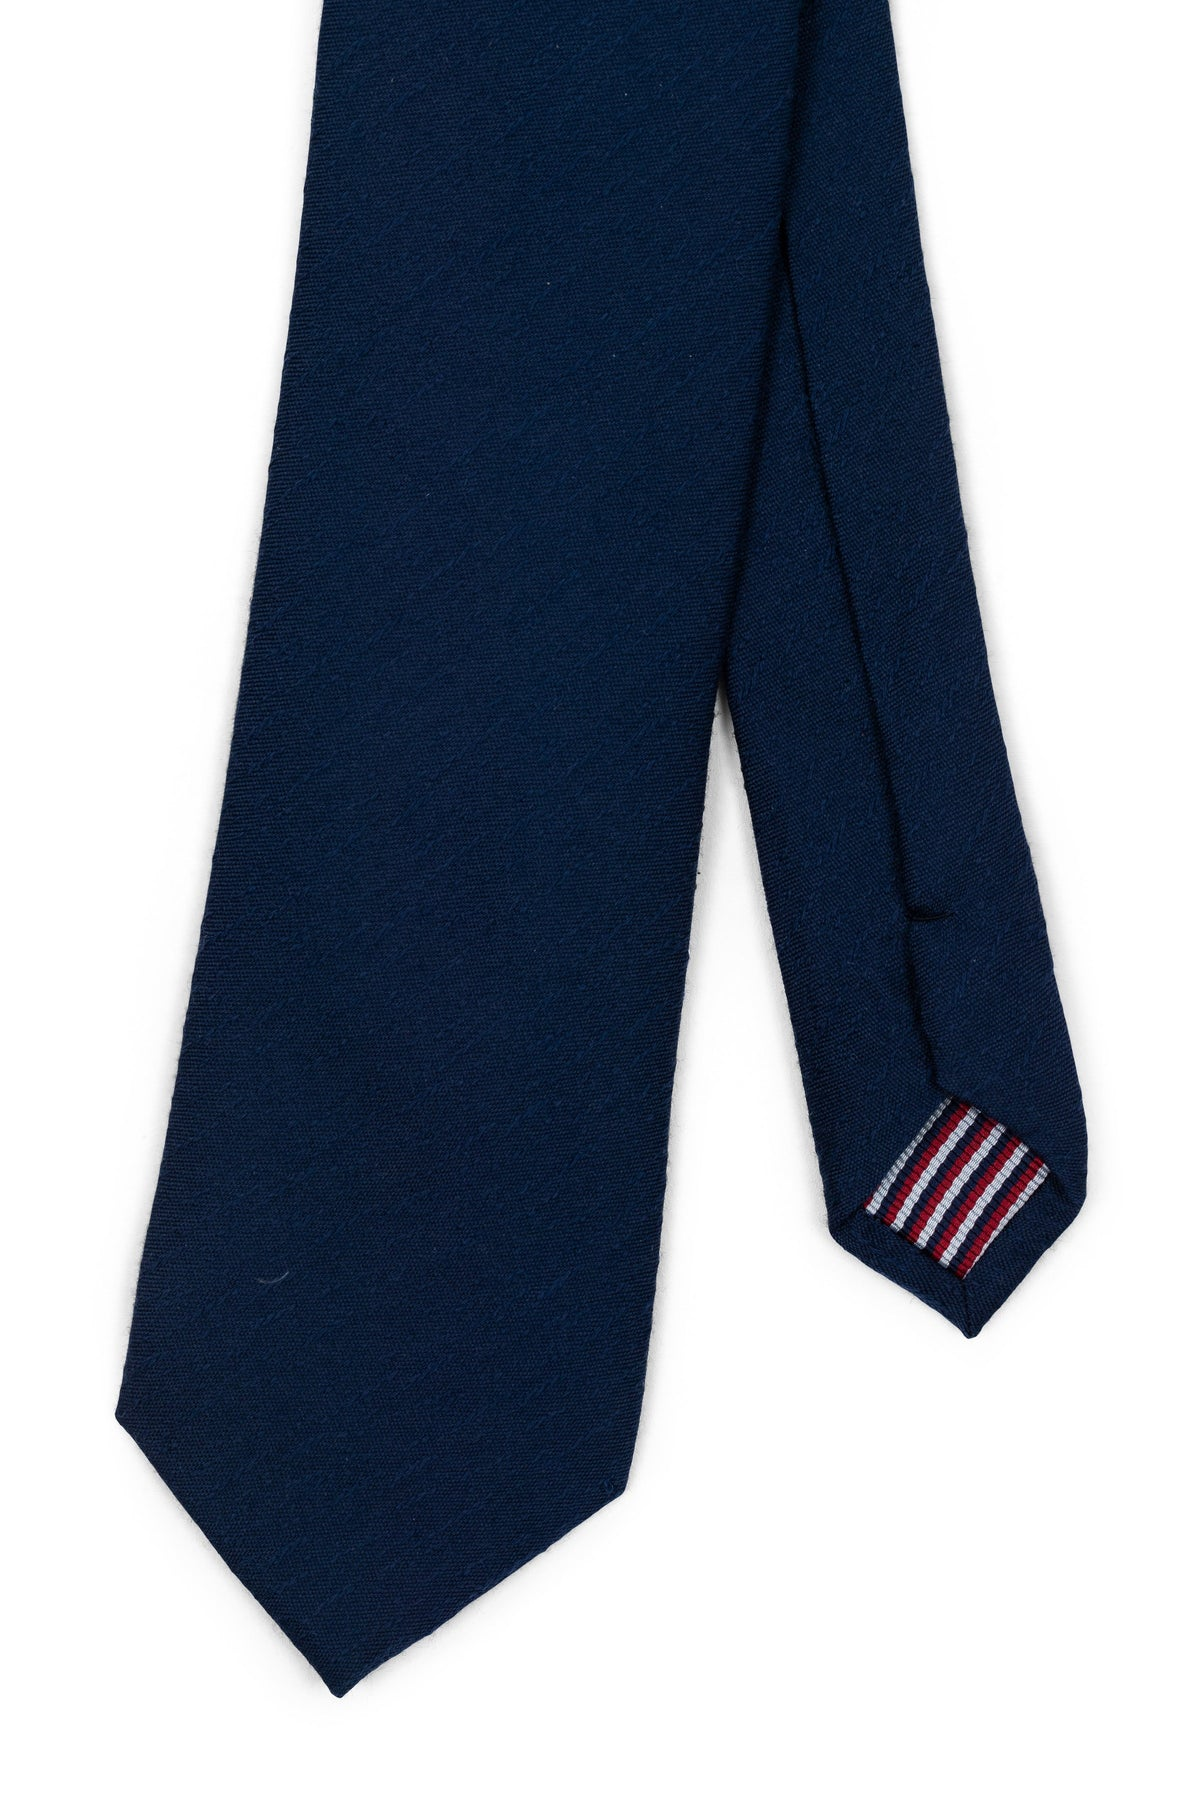 Solid Navy Textured